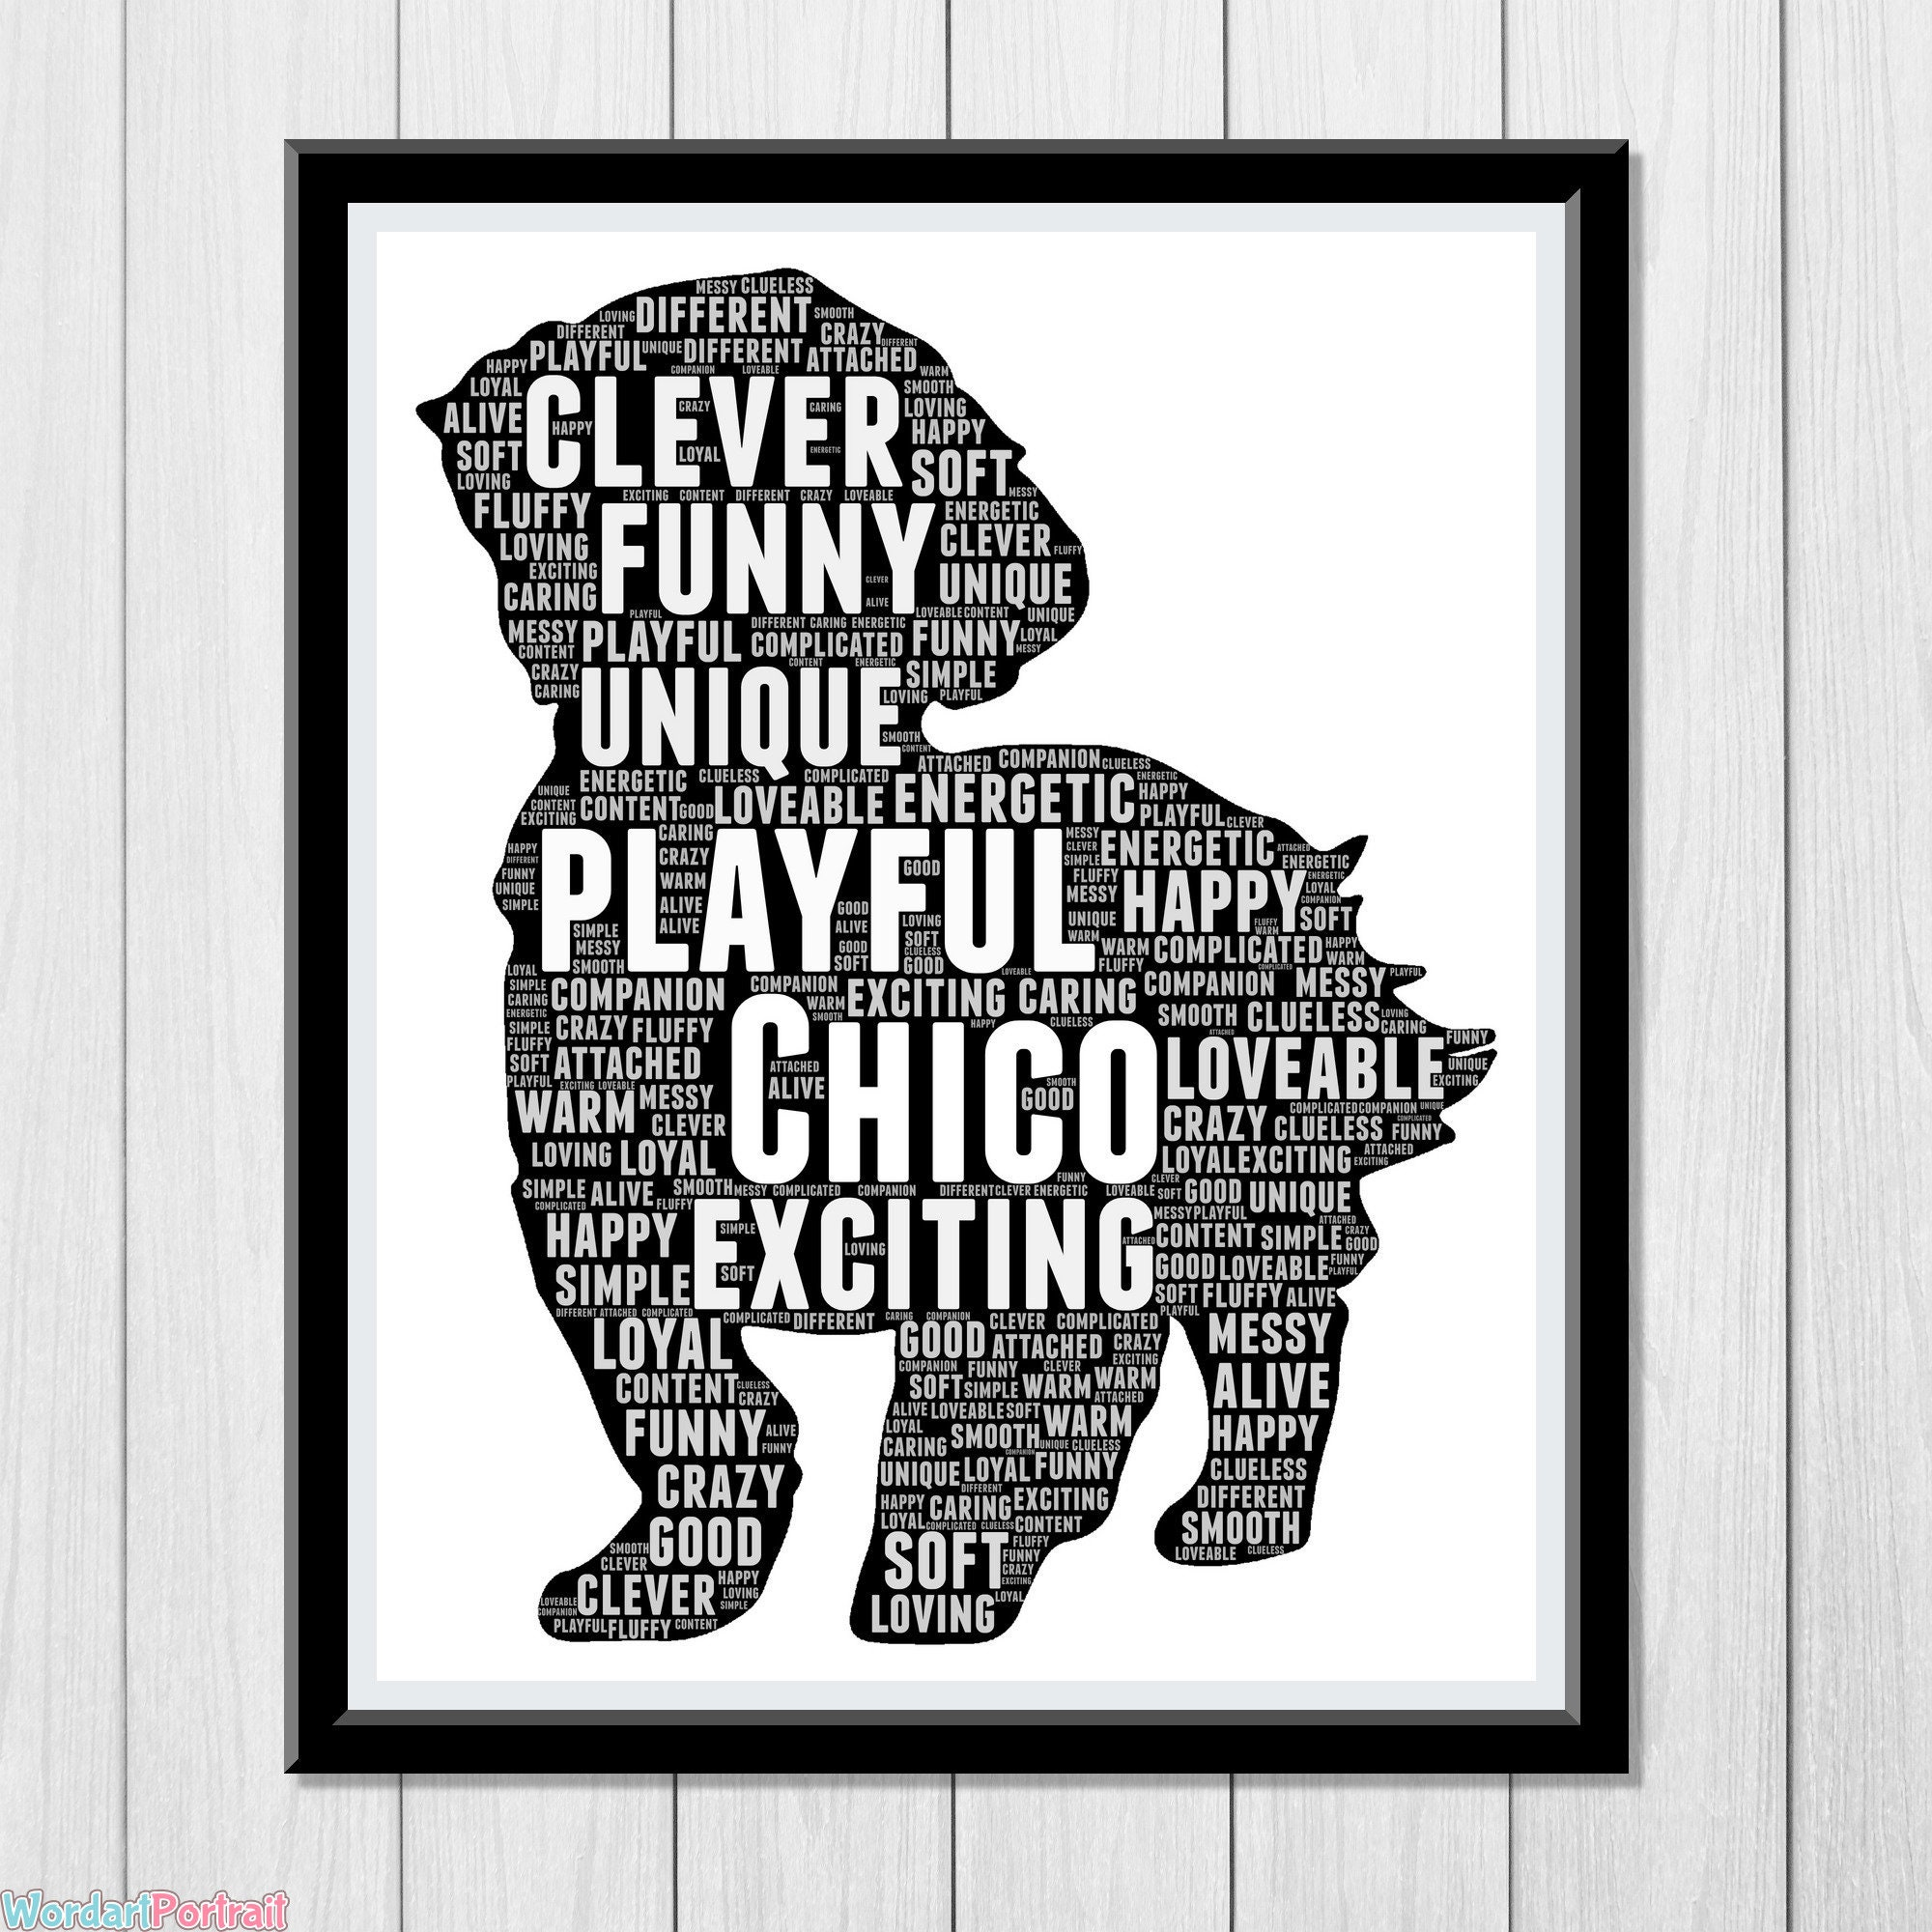 Maltese Dog Personalized Gifts- for dog lovers - Maltese Shih Tzu Gift - Dog picture frames - dog owners Presents Word Cloud Art Wall Print